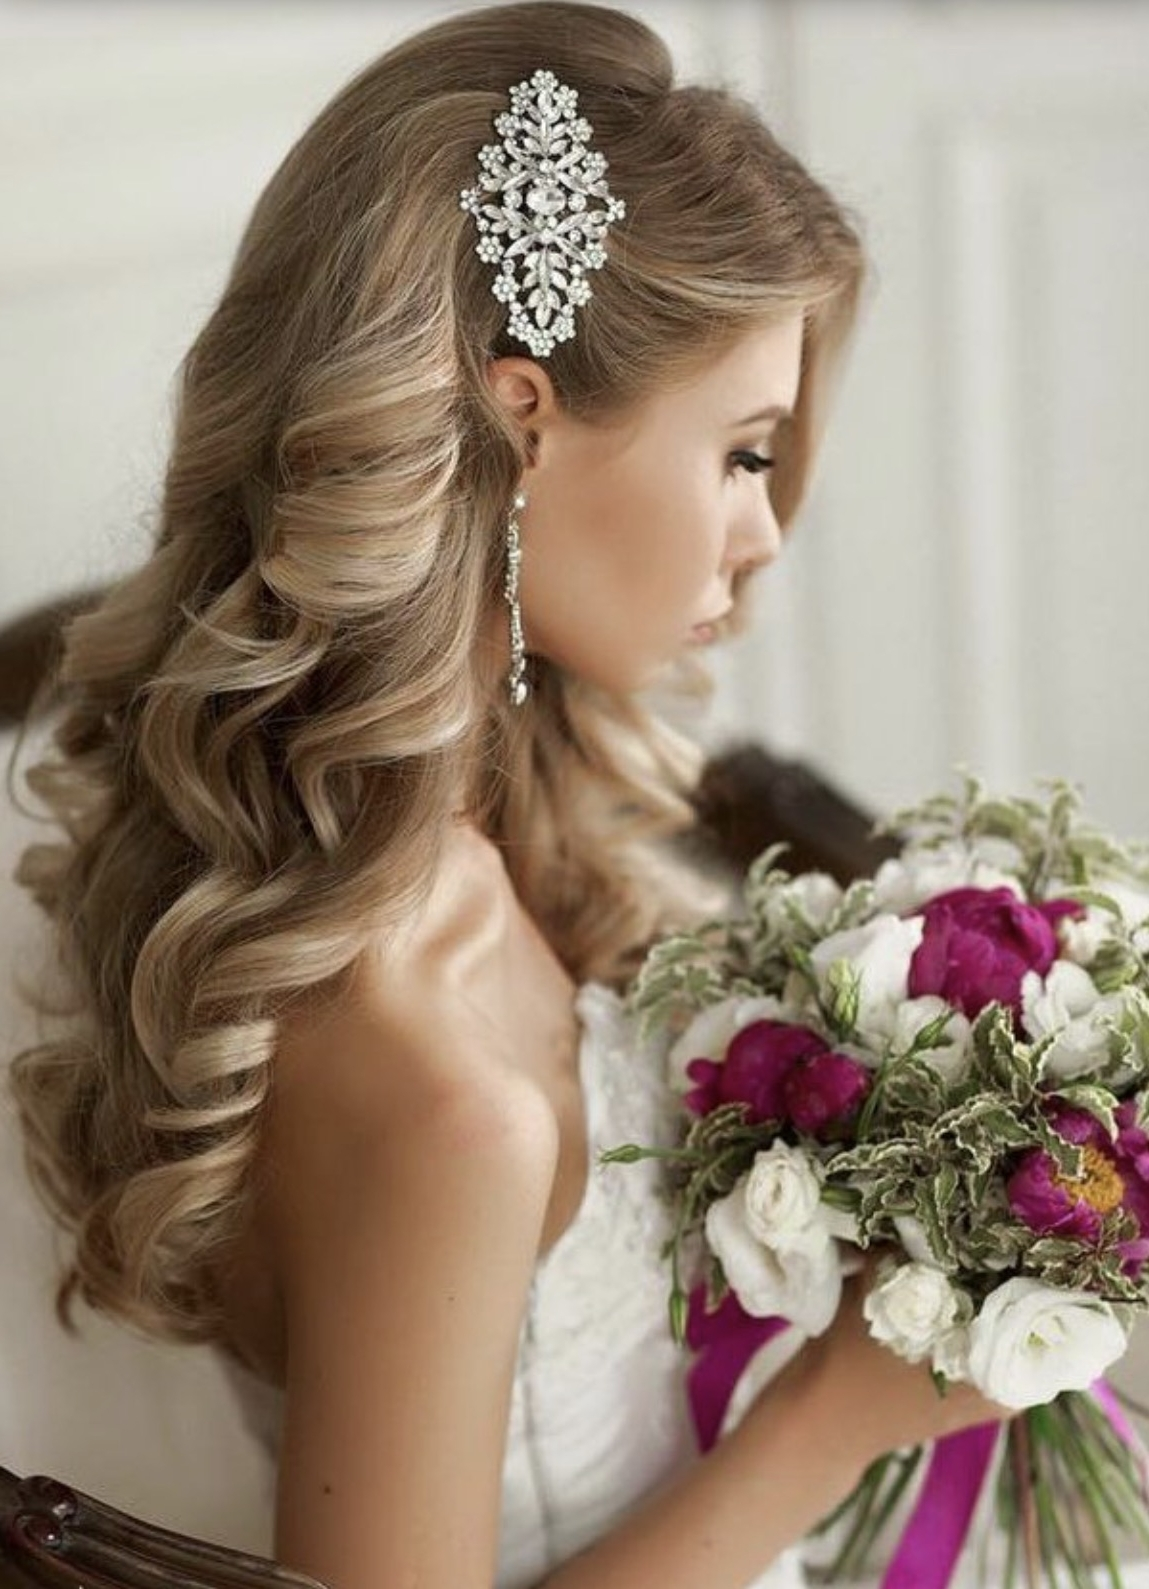 Recent Wedding Hairstyles For Older Brides For Weddings (View 14 of 15)